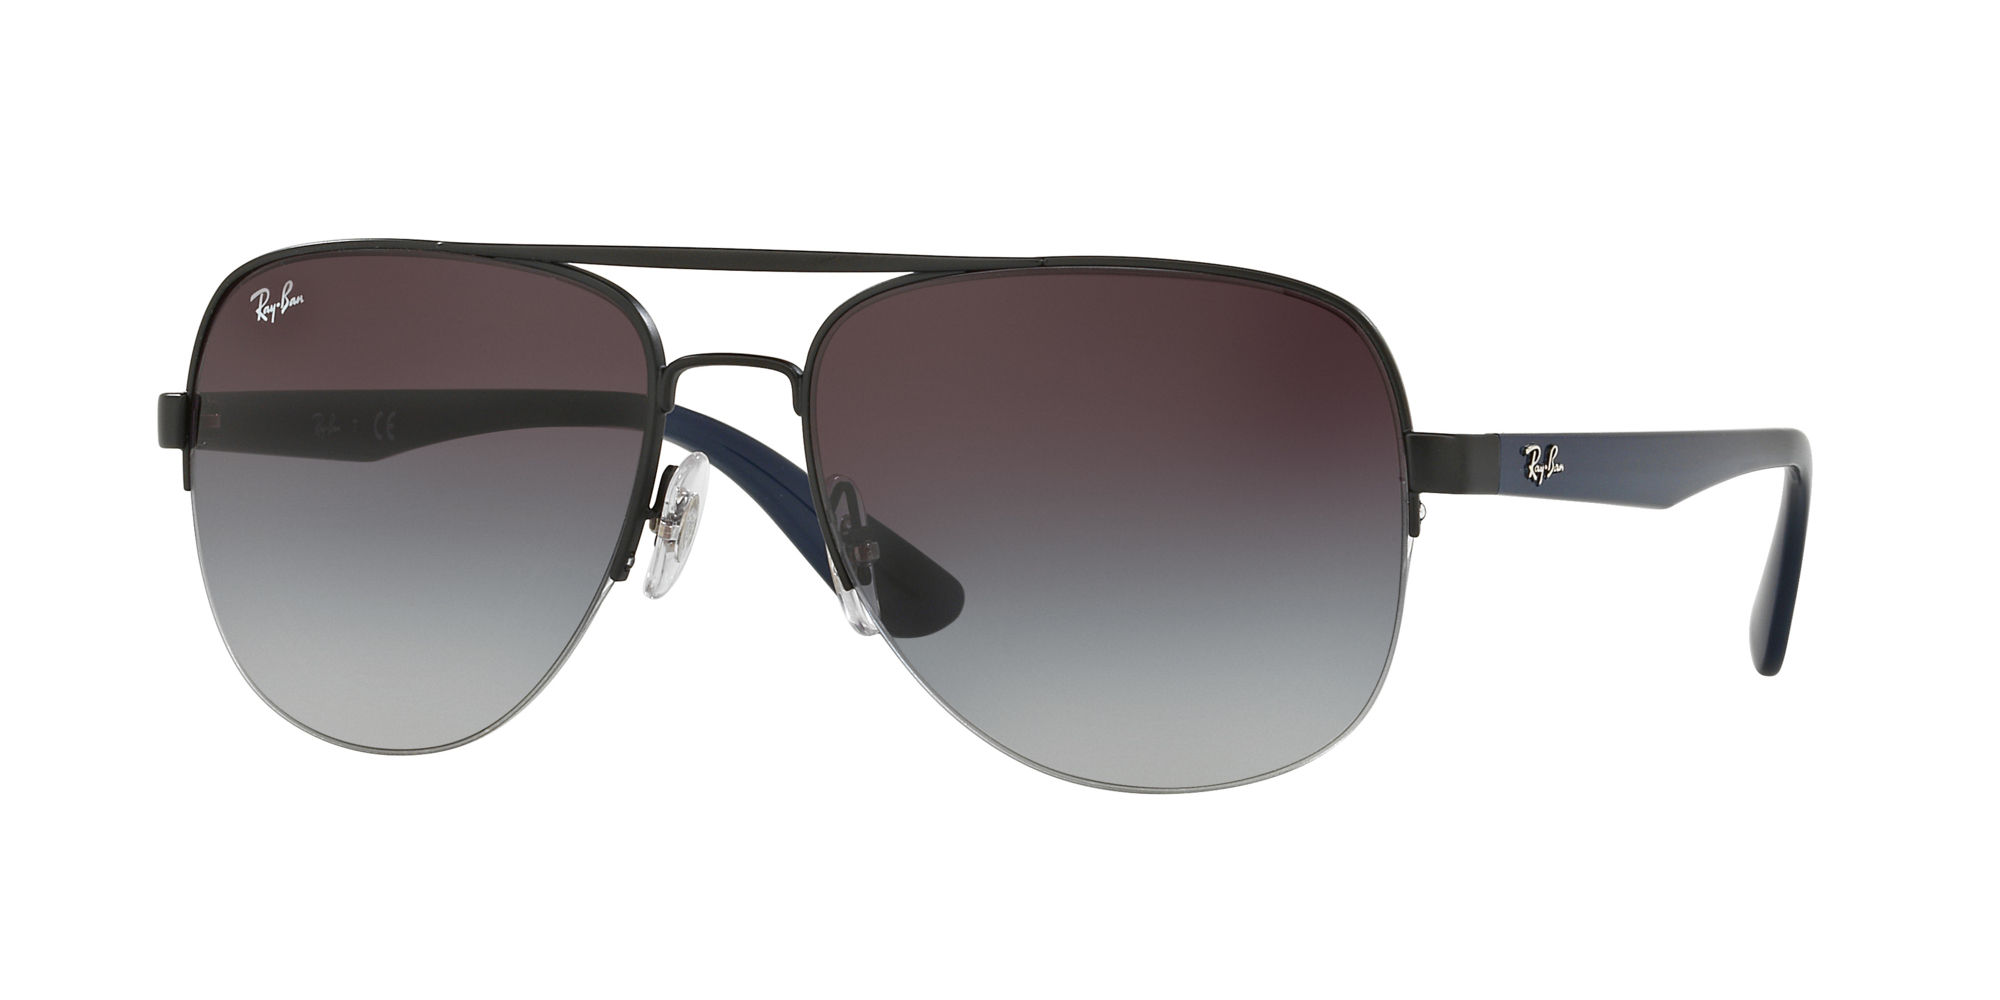 Ray-Ban Gray Gradient Sunglasses - 0RB3552I/0068G 58 - 17